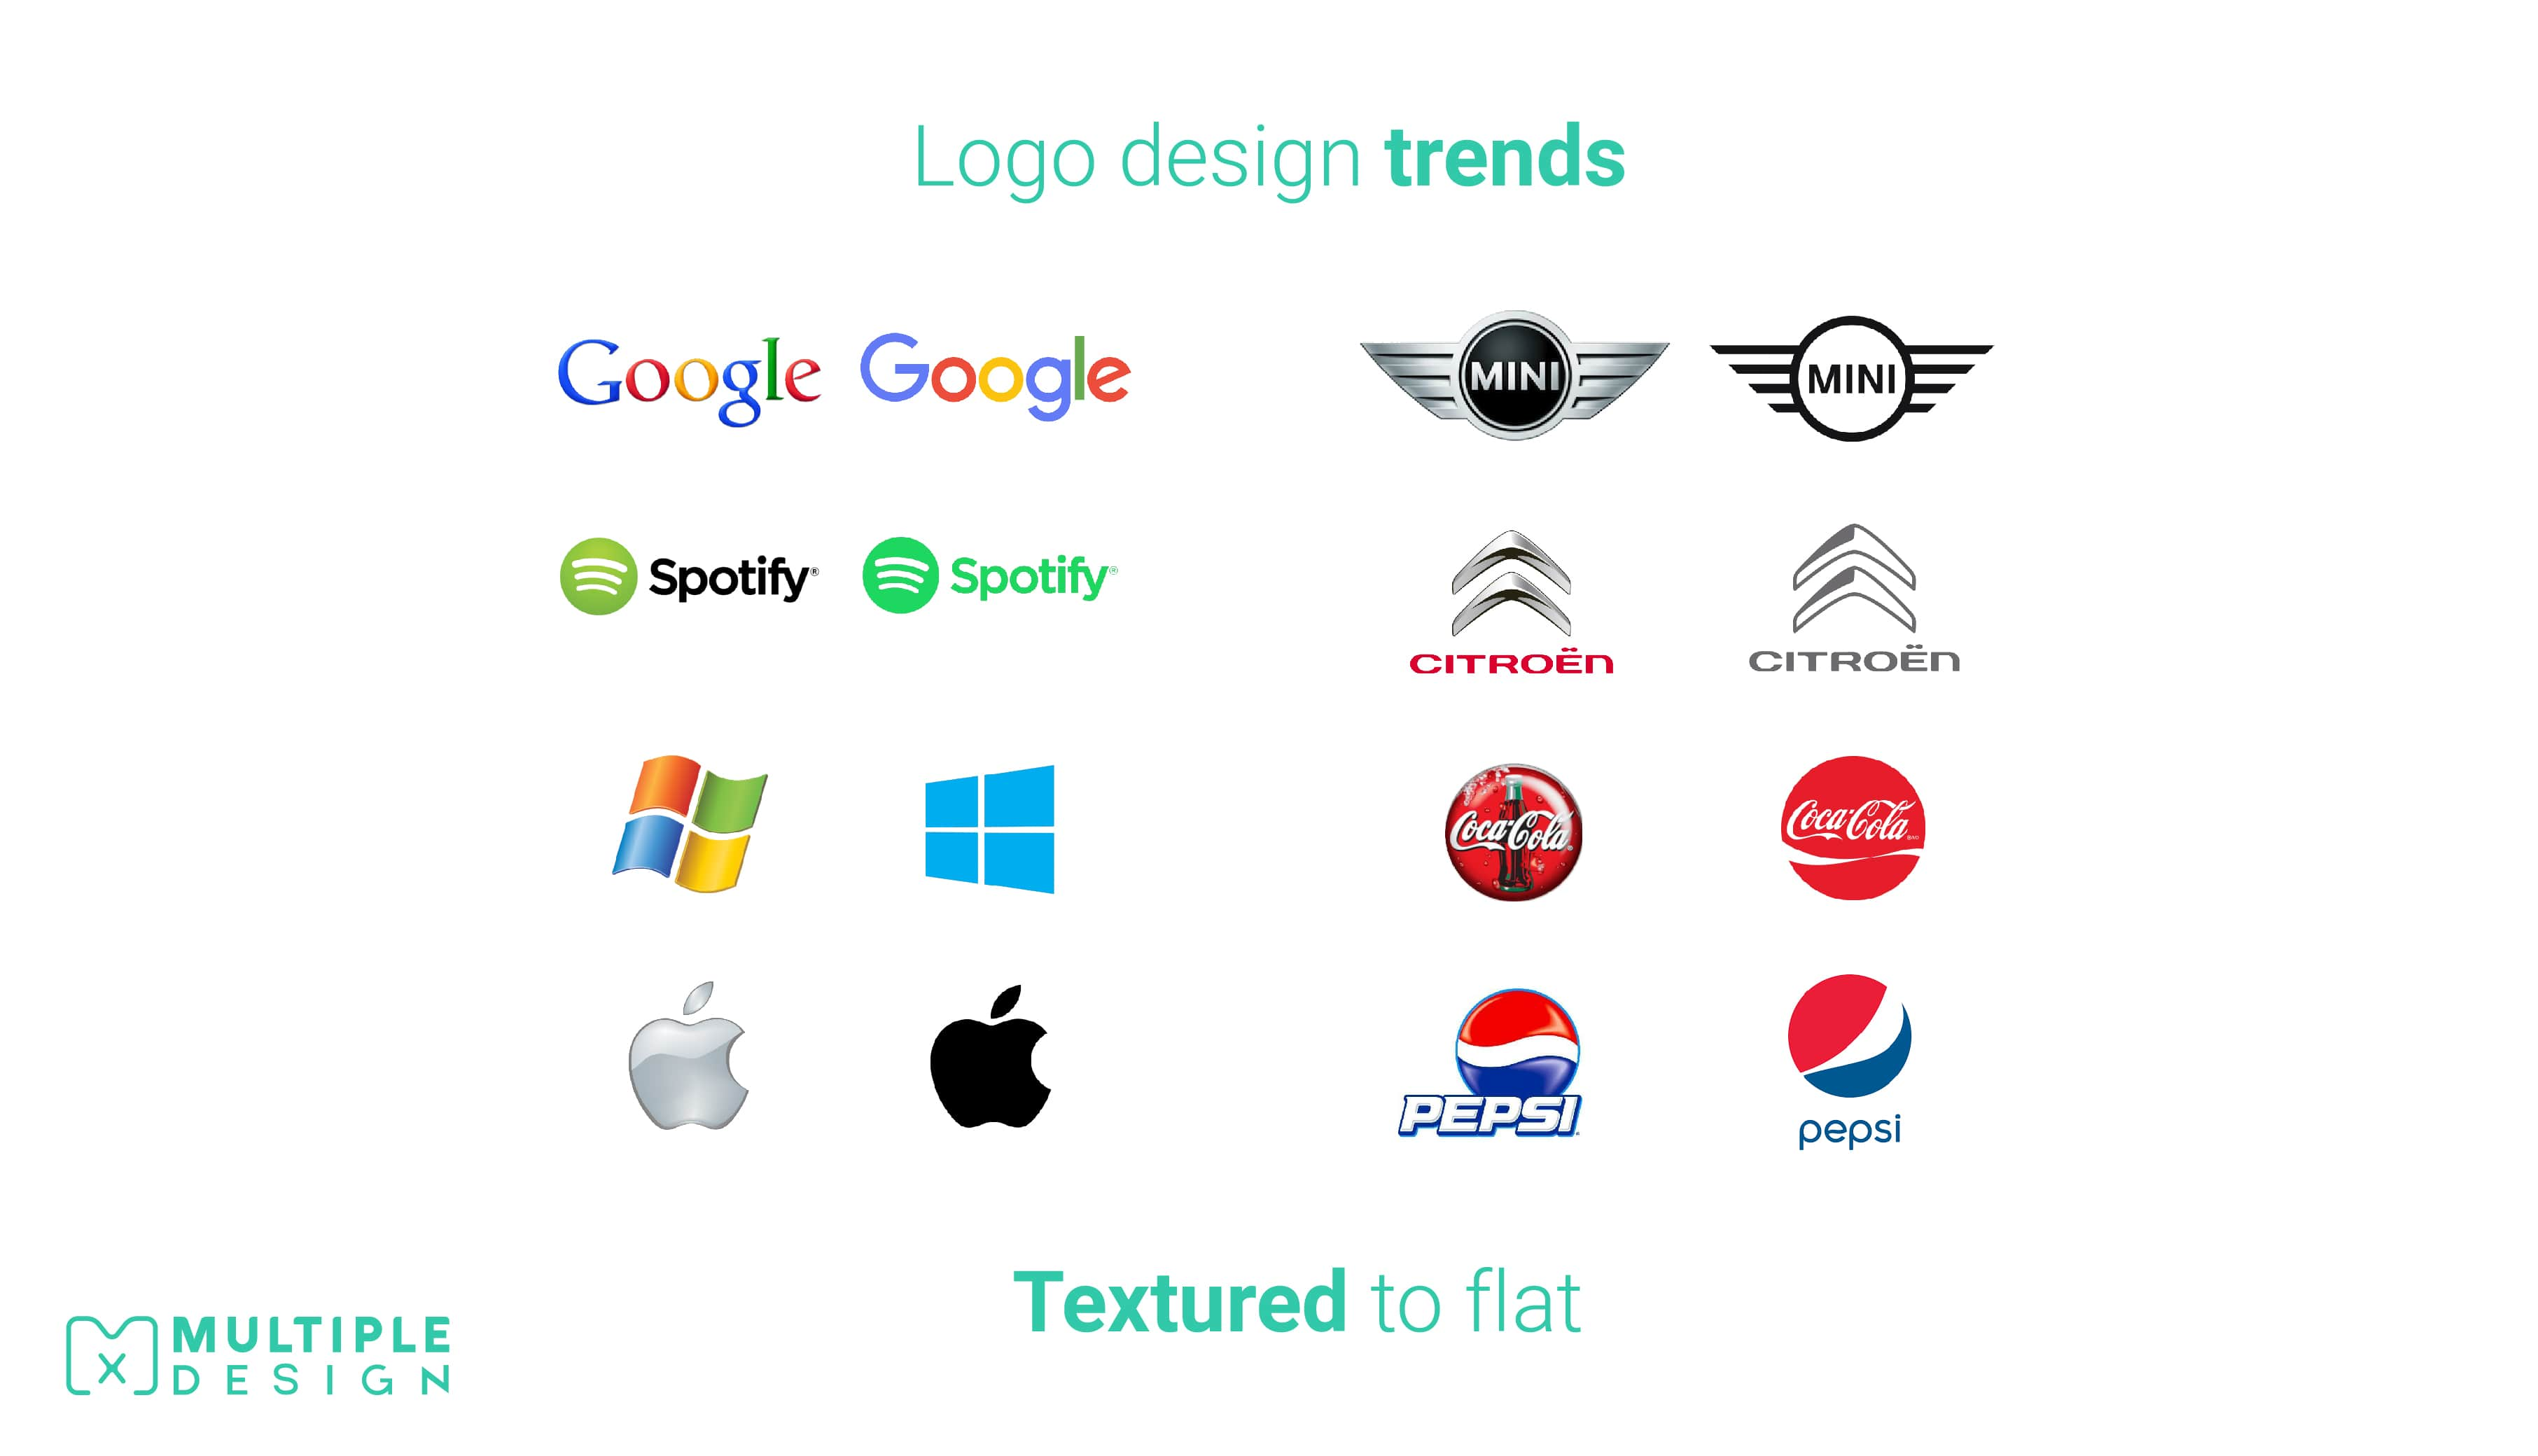 Logo design trends, from textured to flat, Google, Windows, Apple, Coke and Pepsi